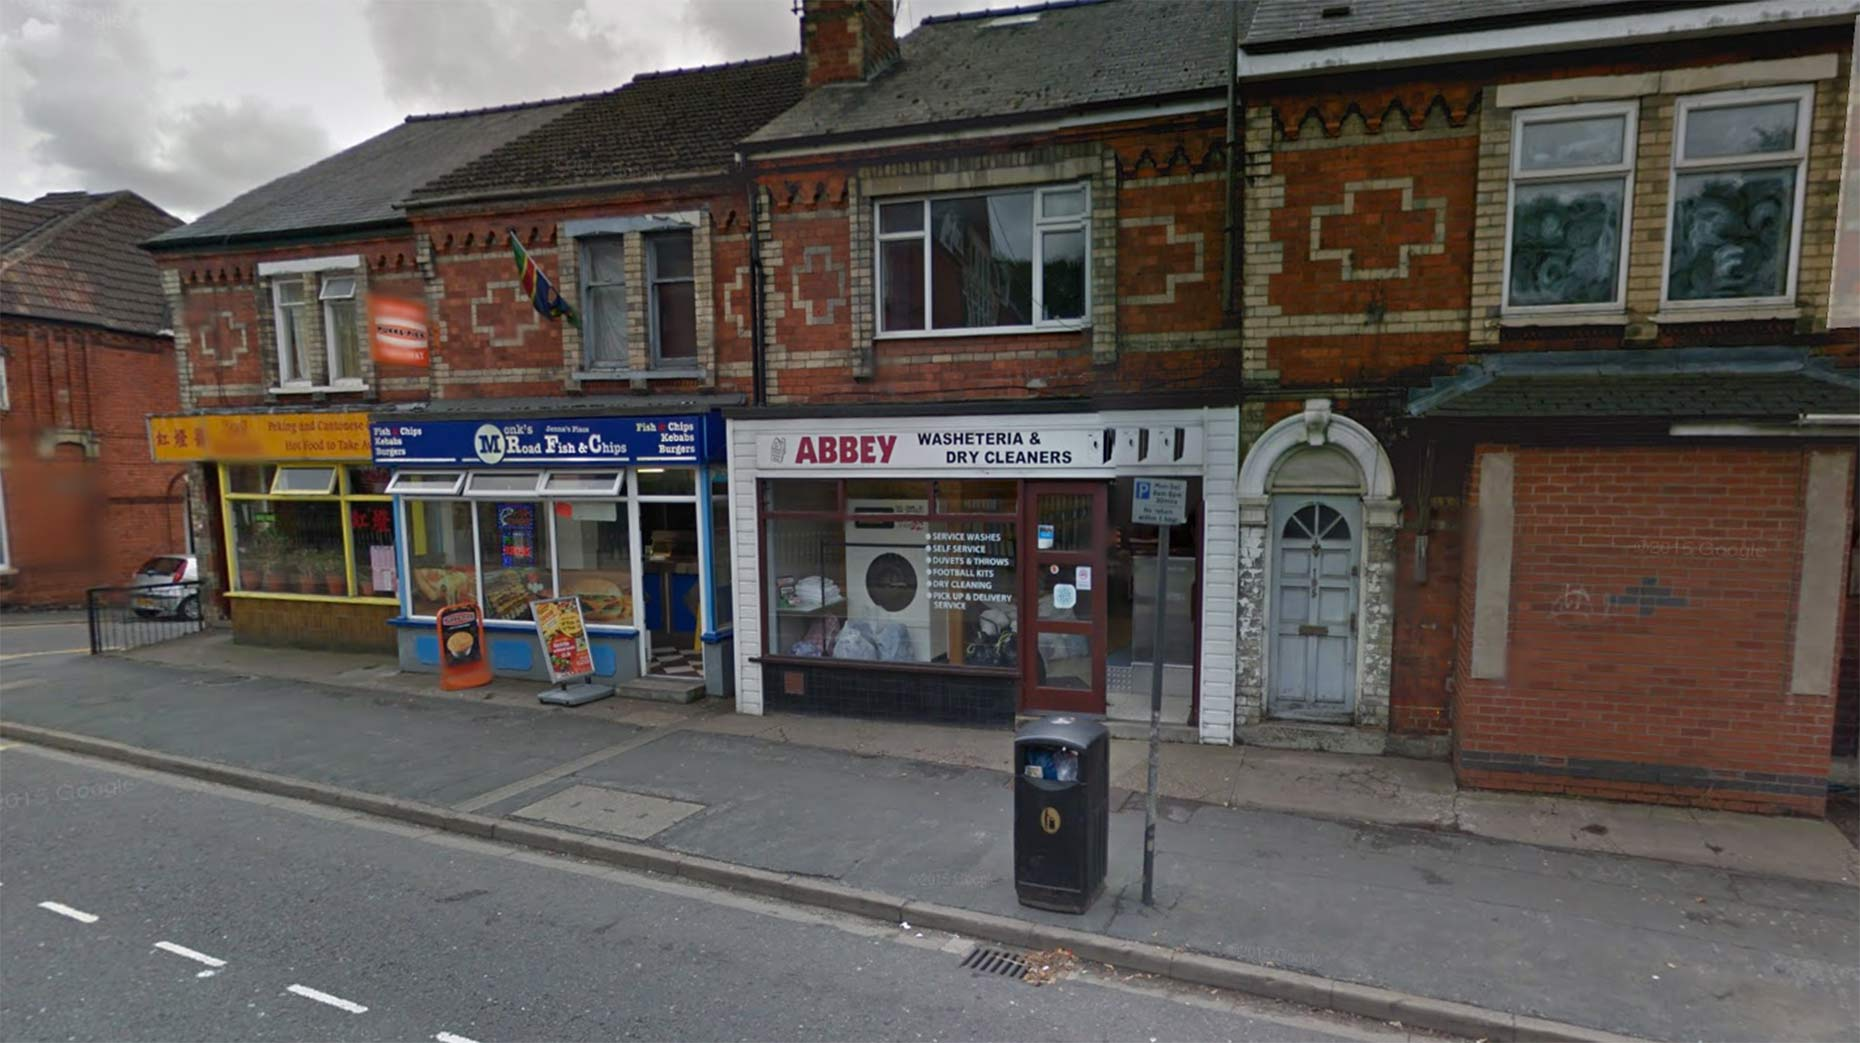 Police are treating the dry cleaners blaze as arson. Photo: Google Street View